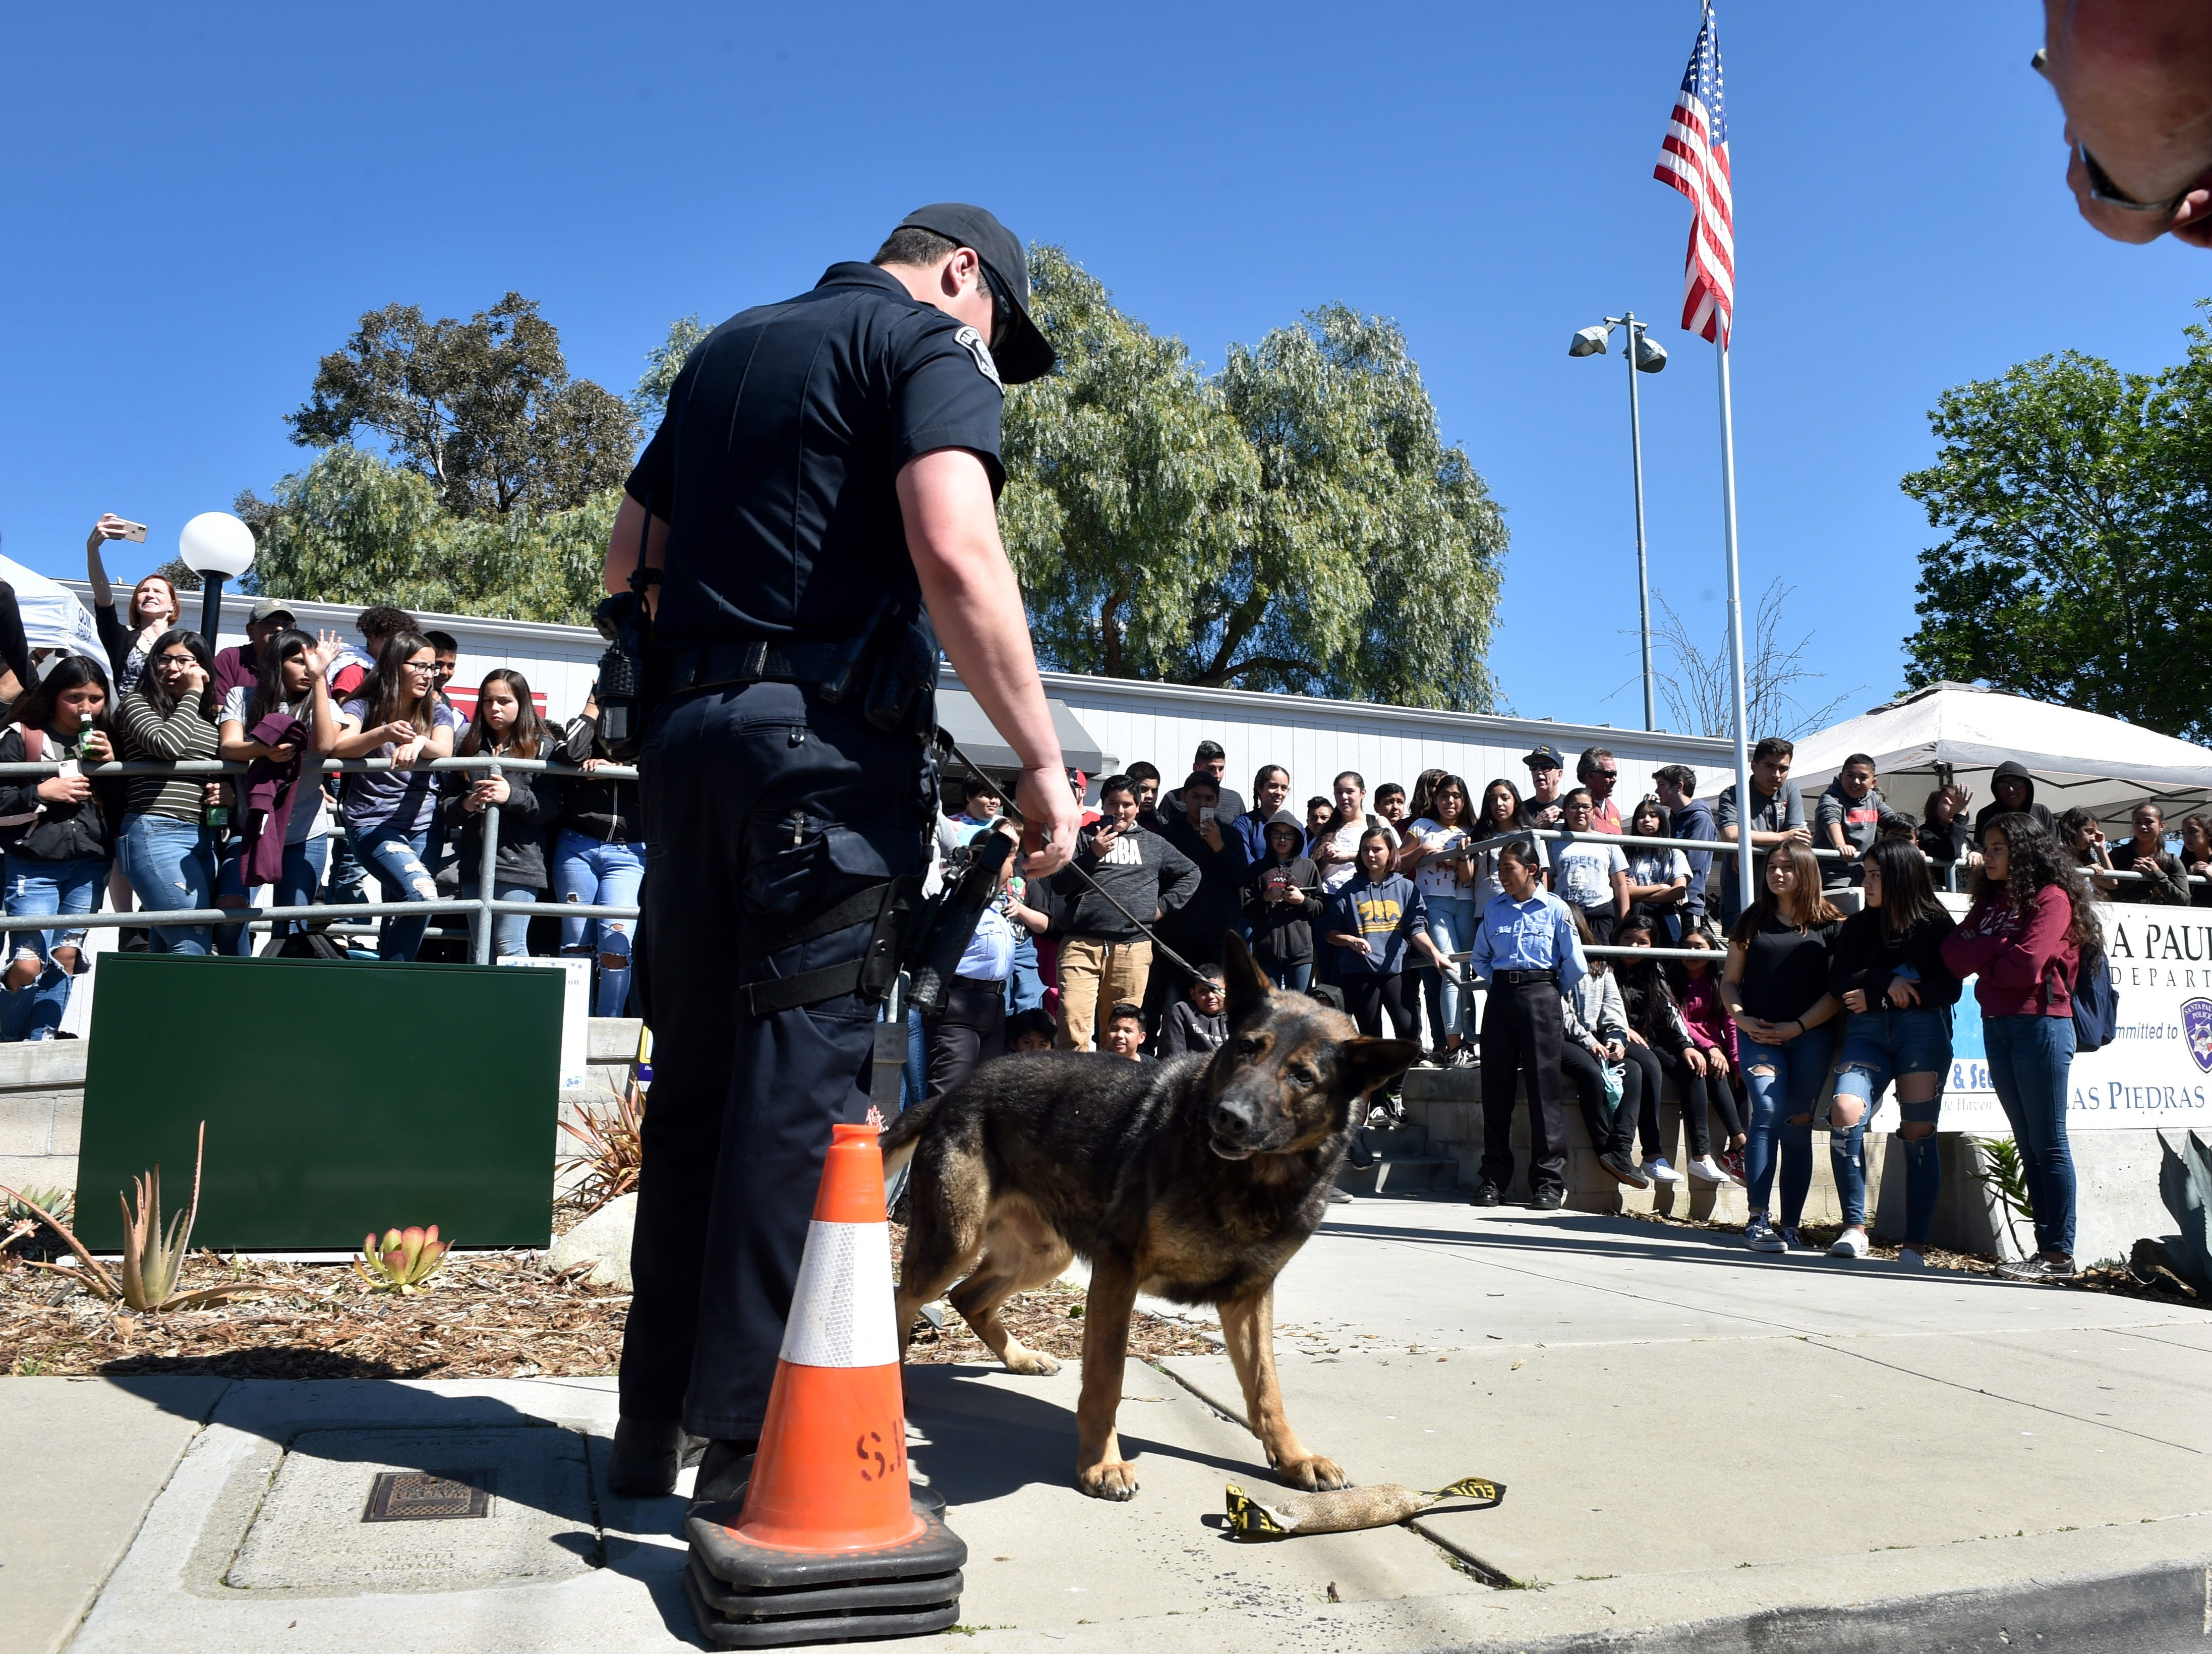 Officer Wyatt Gates and K-9 officer Ace participate in a demonstration for teens at the Santa Paula Police Department's youth center on Friday.